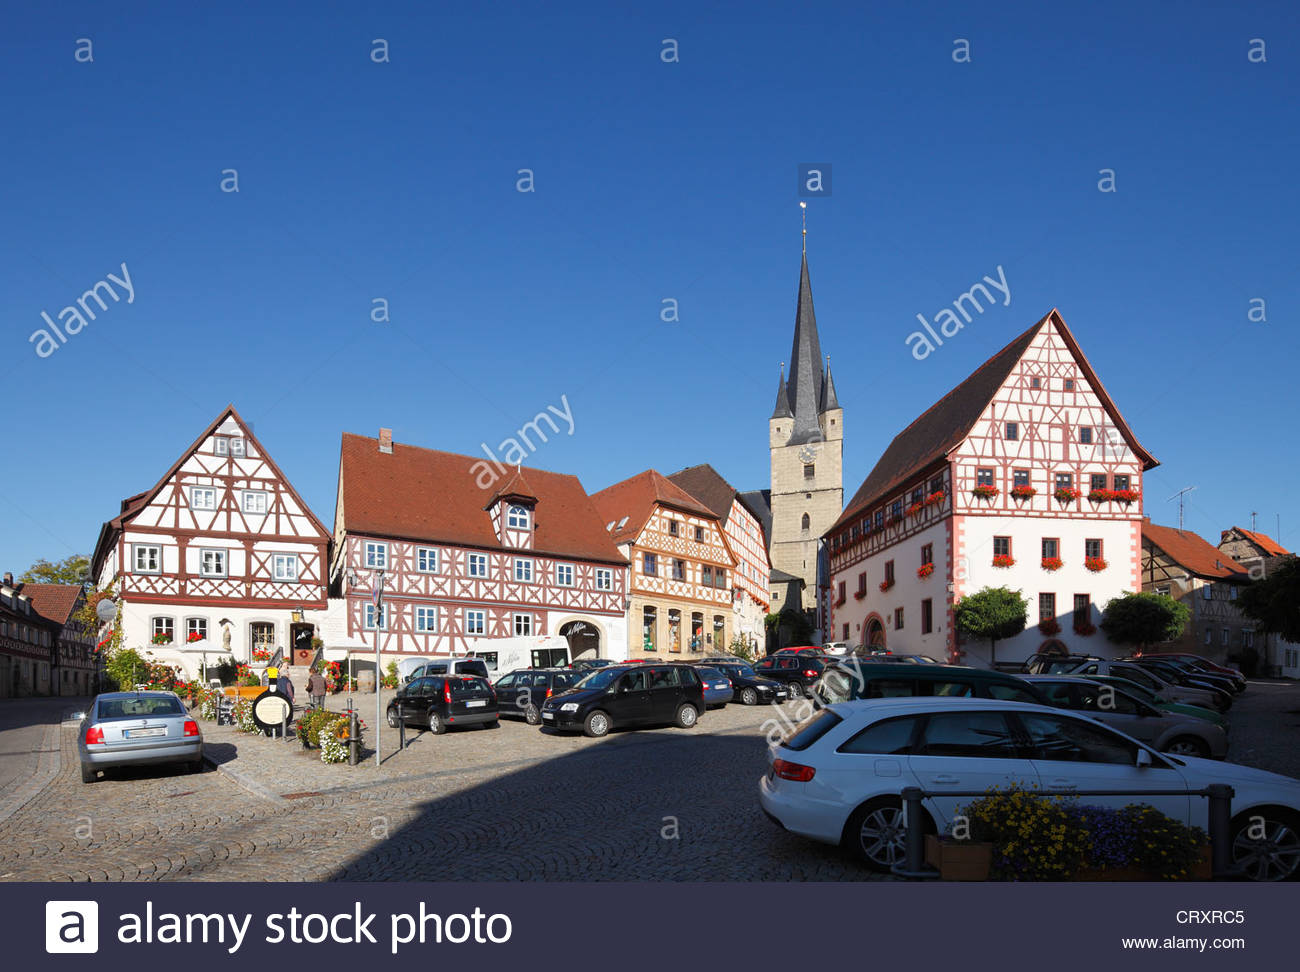 Germany, Bavaria, Zeil am Main, View of timber framed building - Stock Image